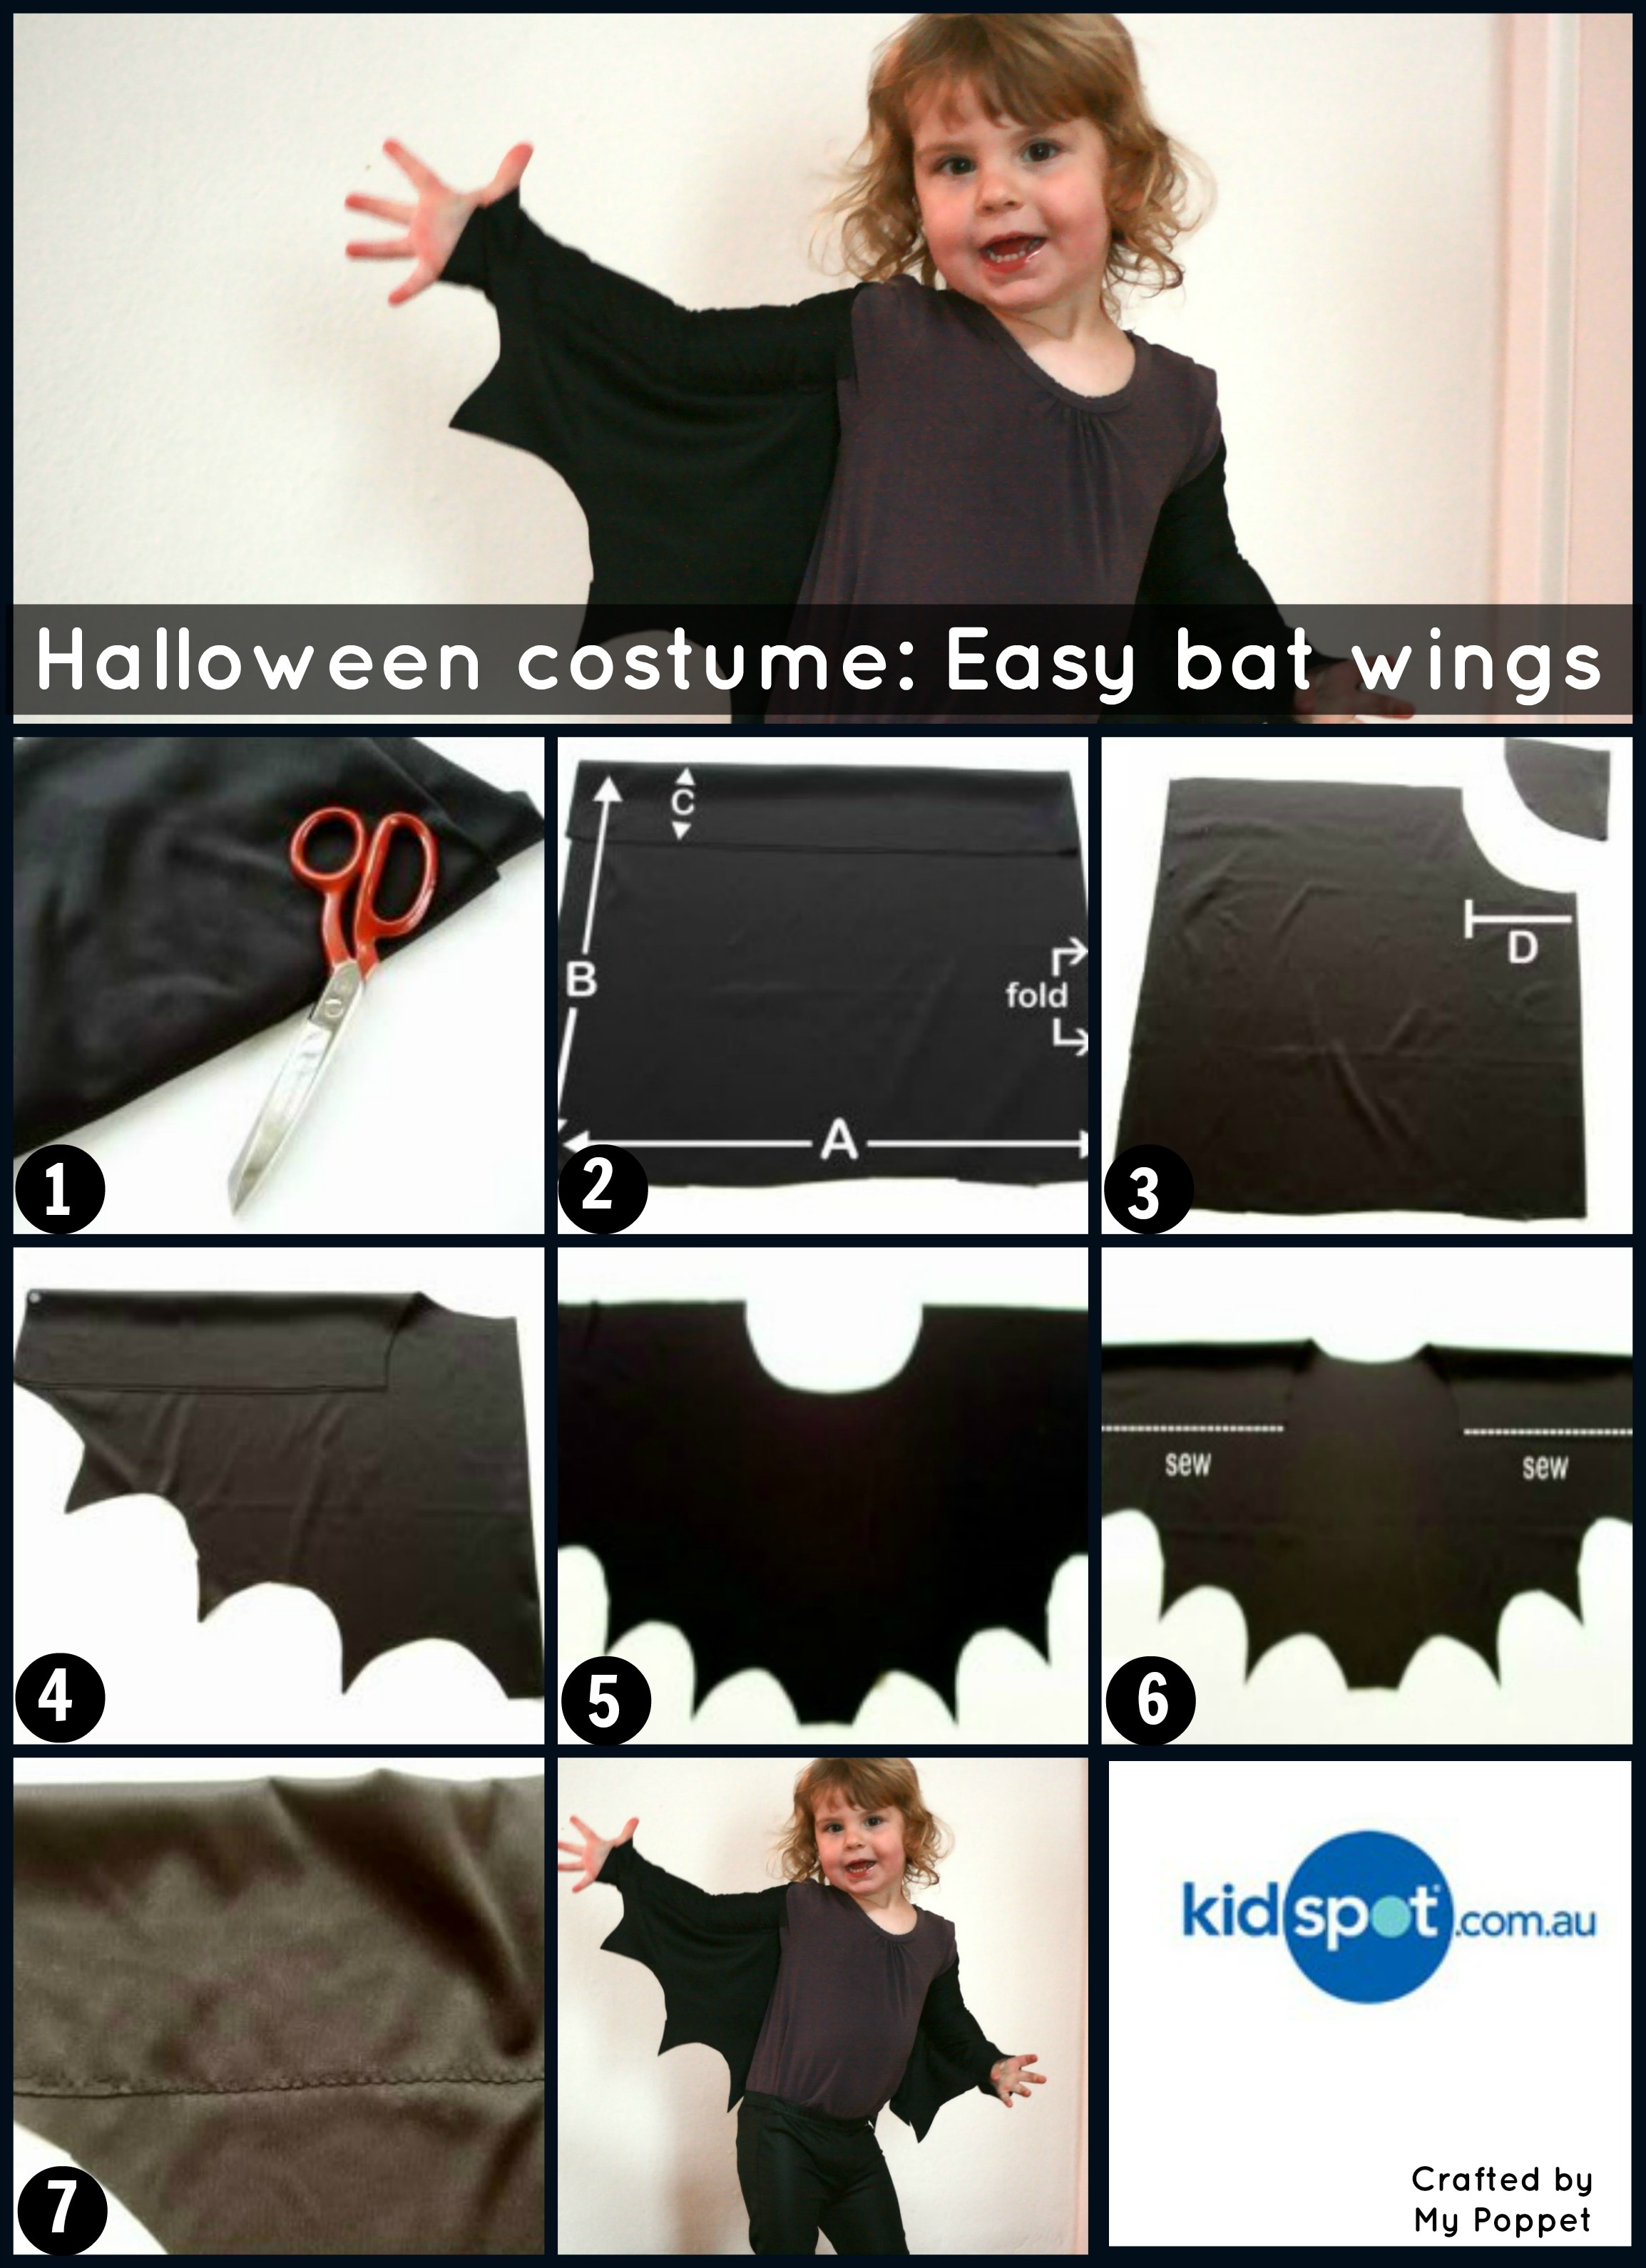 How to make an easy peasy halloween costume bat wings for little batwingsagaing solutioingenieria Choice Image